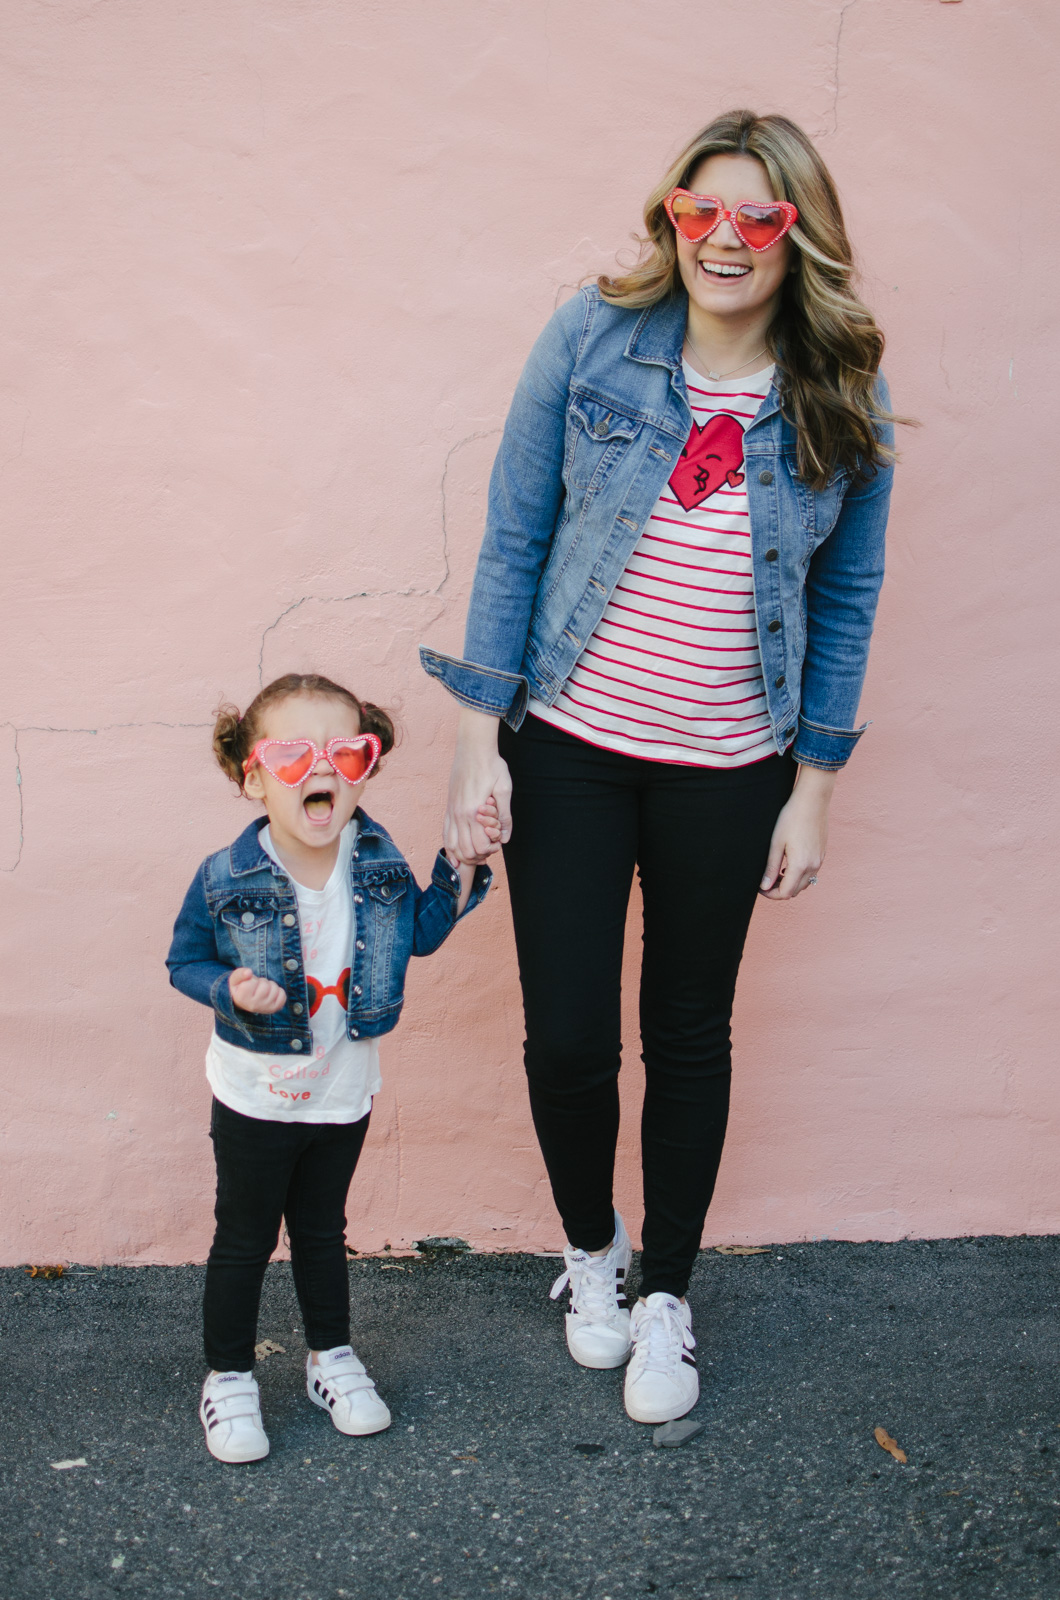 mommy and me outfits valentines day - mommy and me outfits matching spring   d77d2e79c276